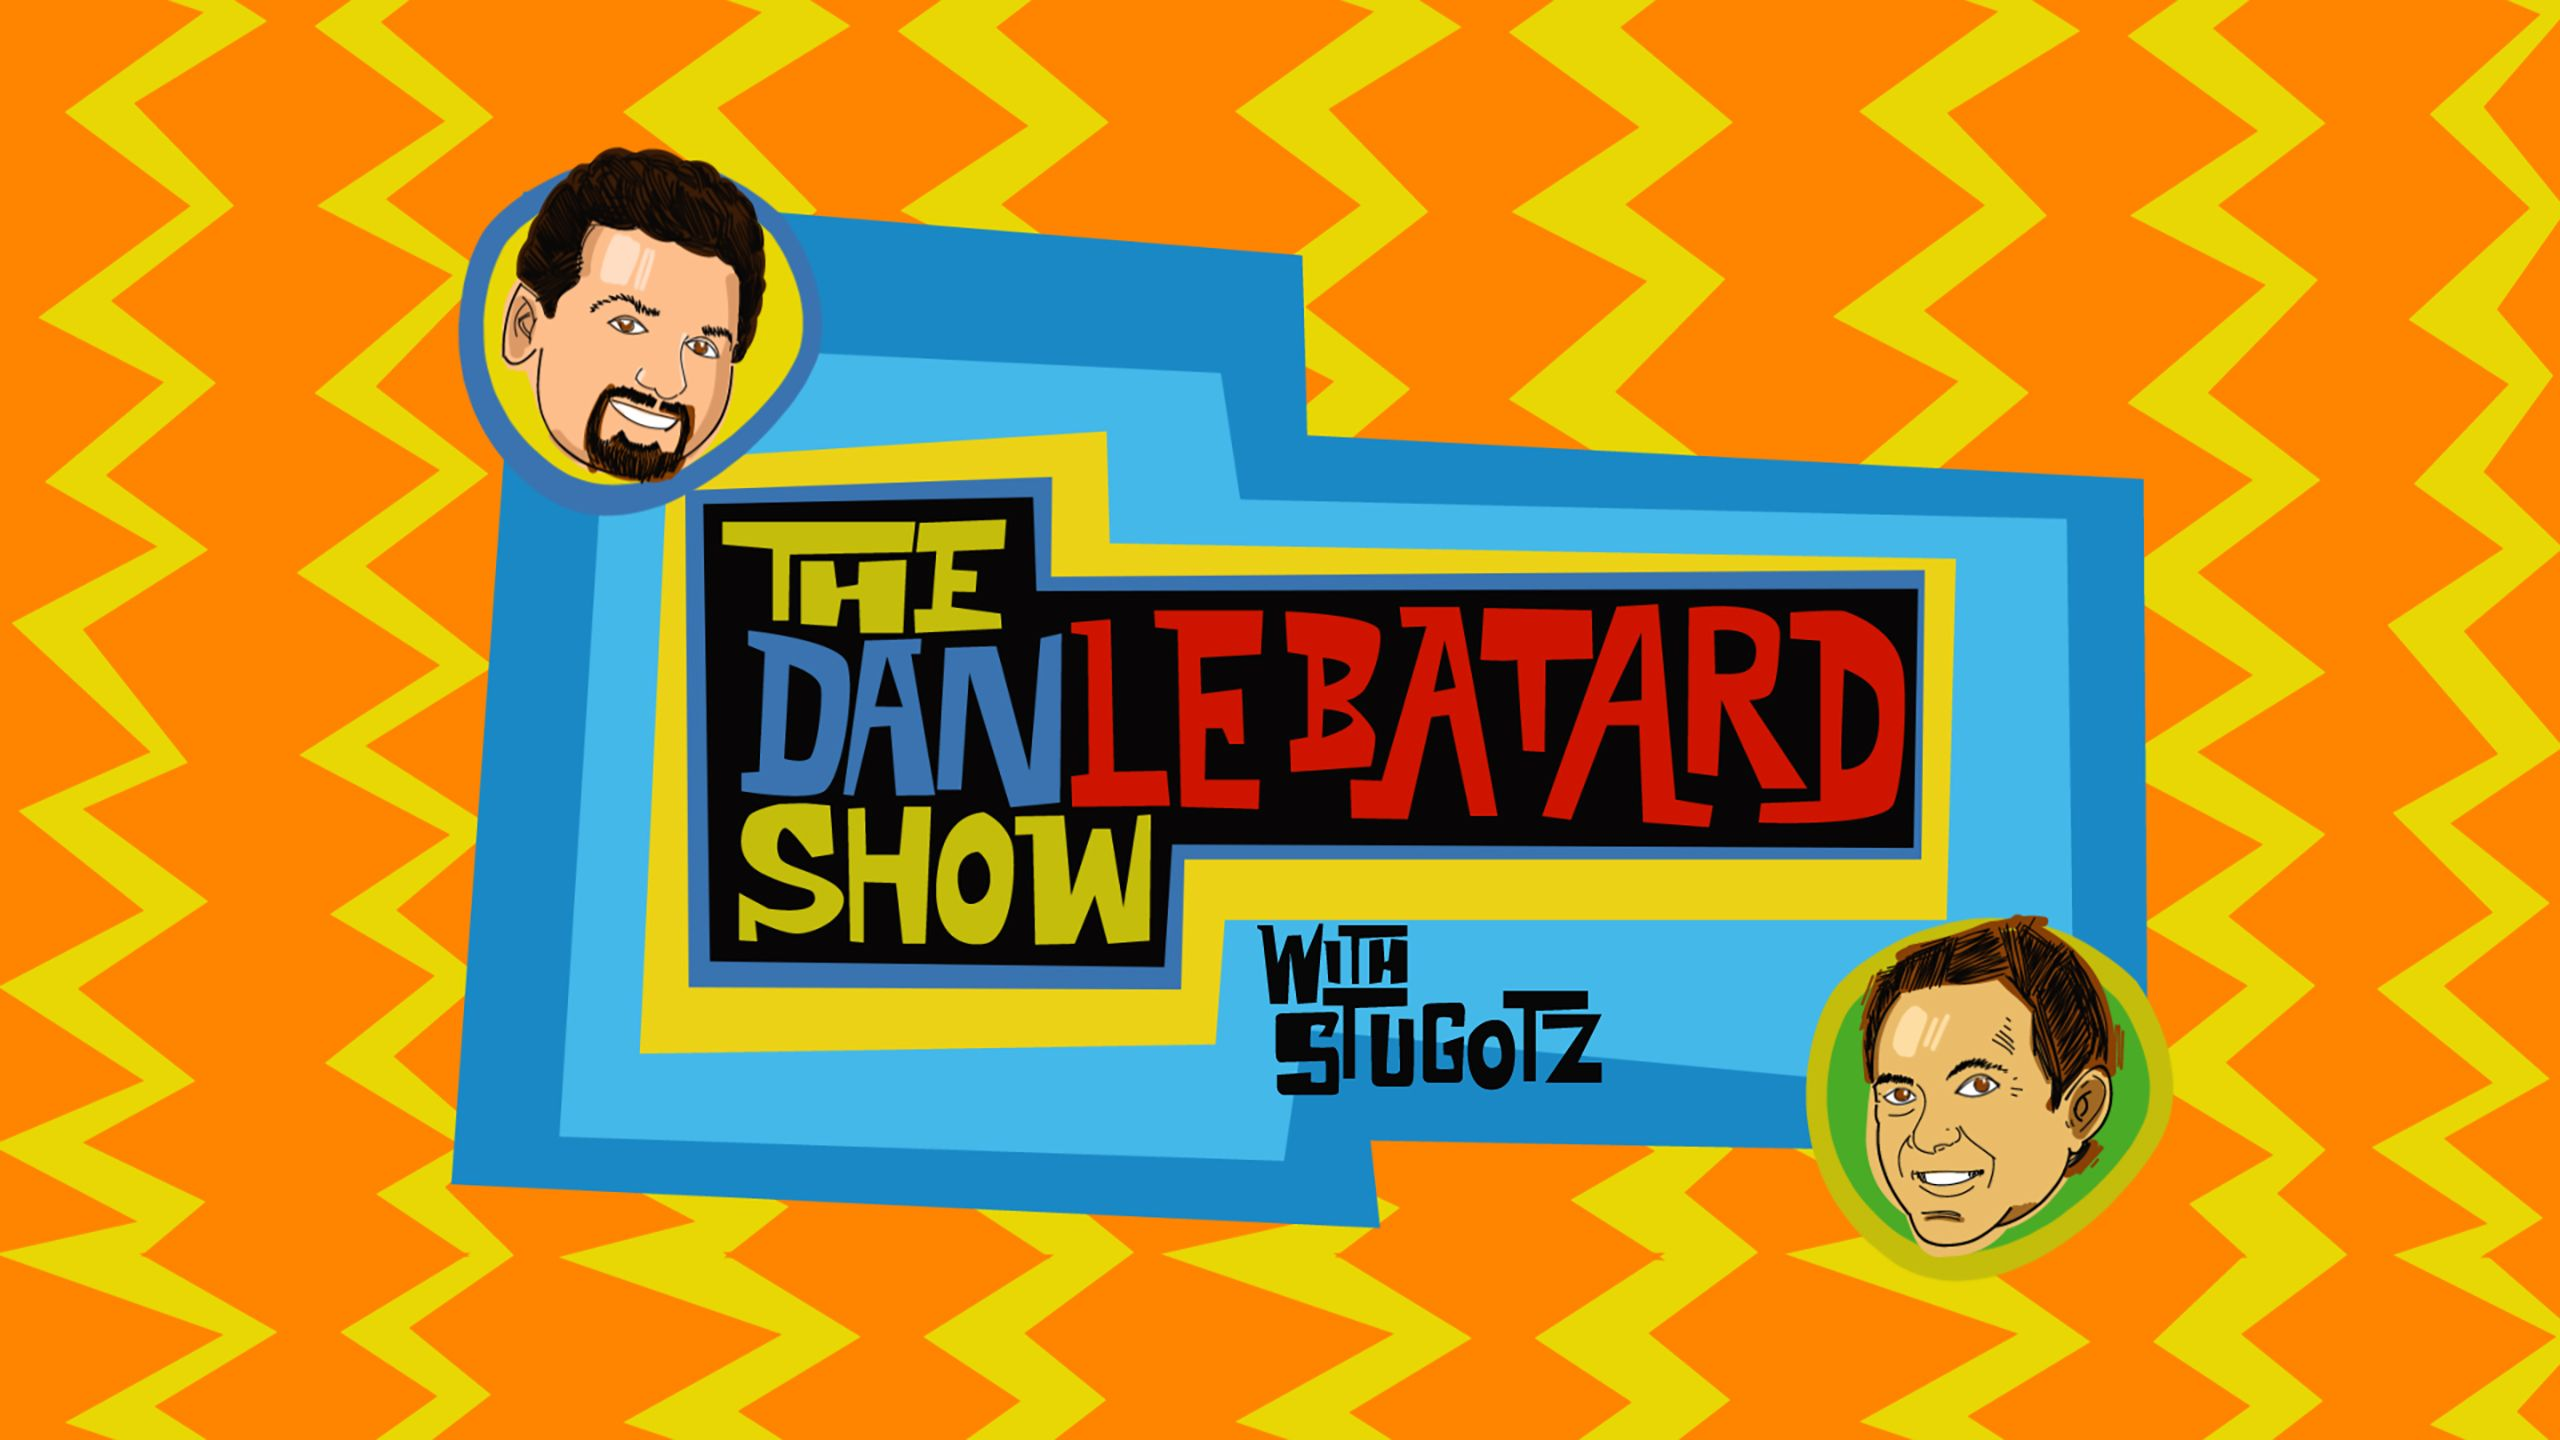 Wed, 3/21 - The Dan Le Batard Show with Stugotz Presented by Progressive